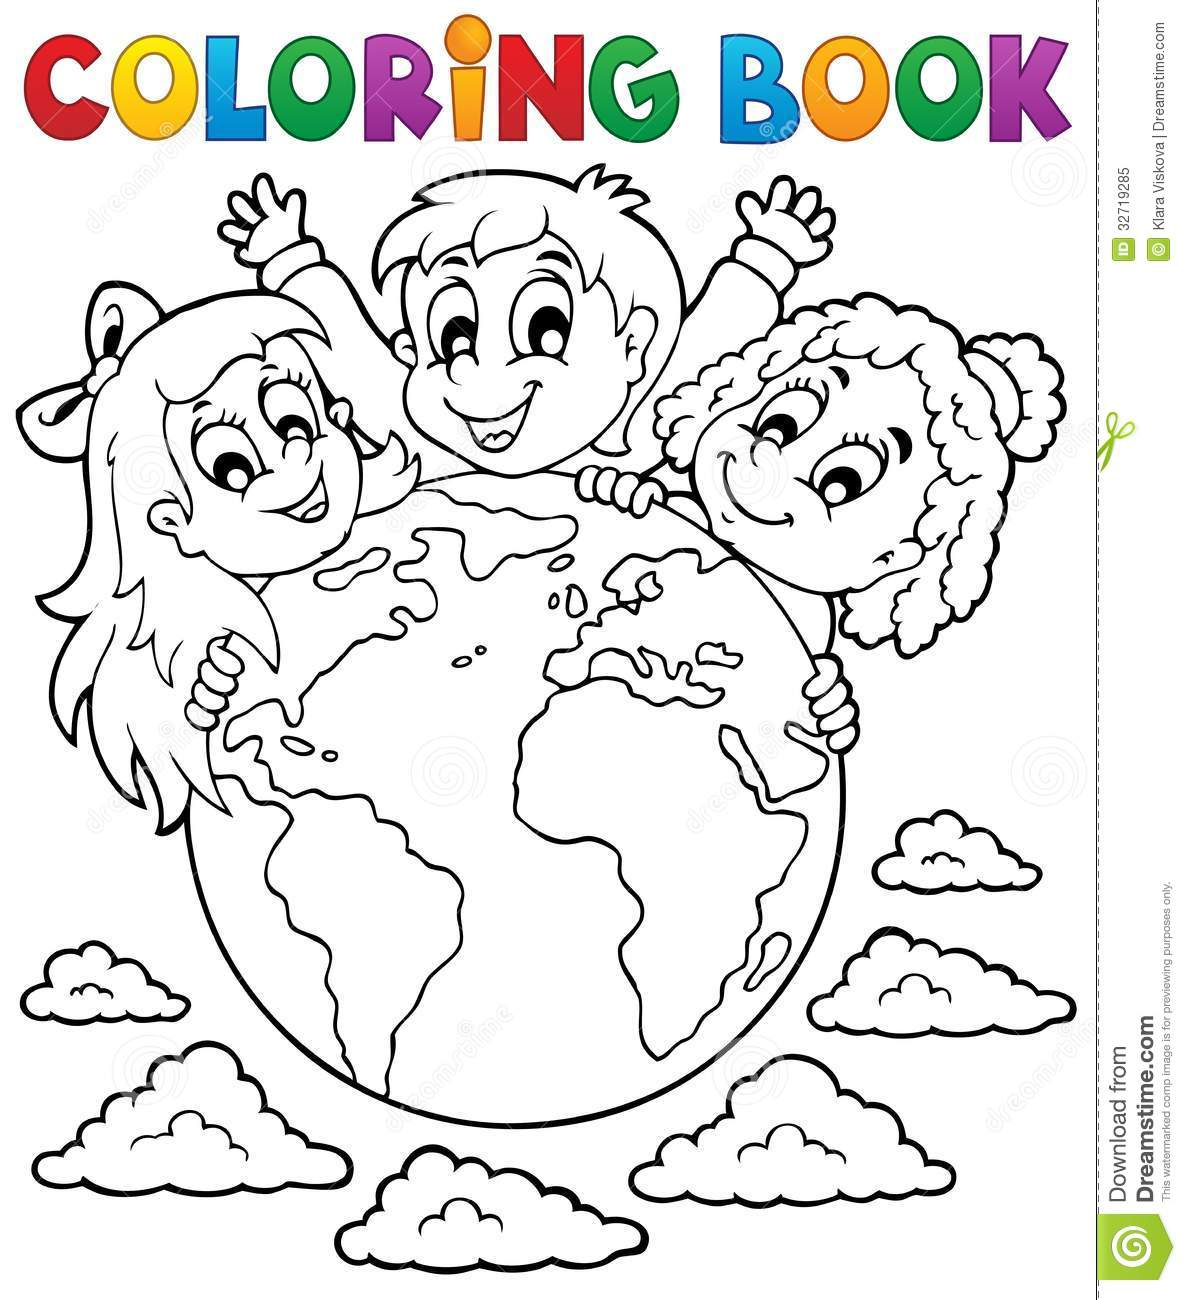 Coloring book kids theme 2 stock vector. Illustration of girl - 32719285